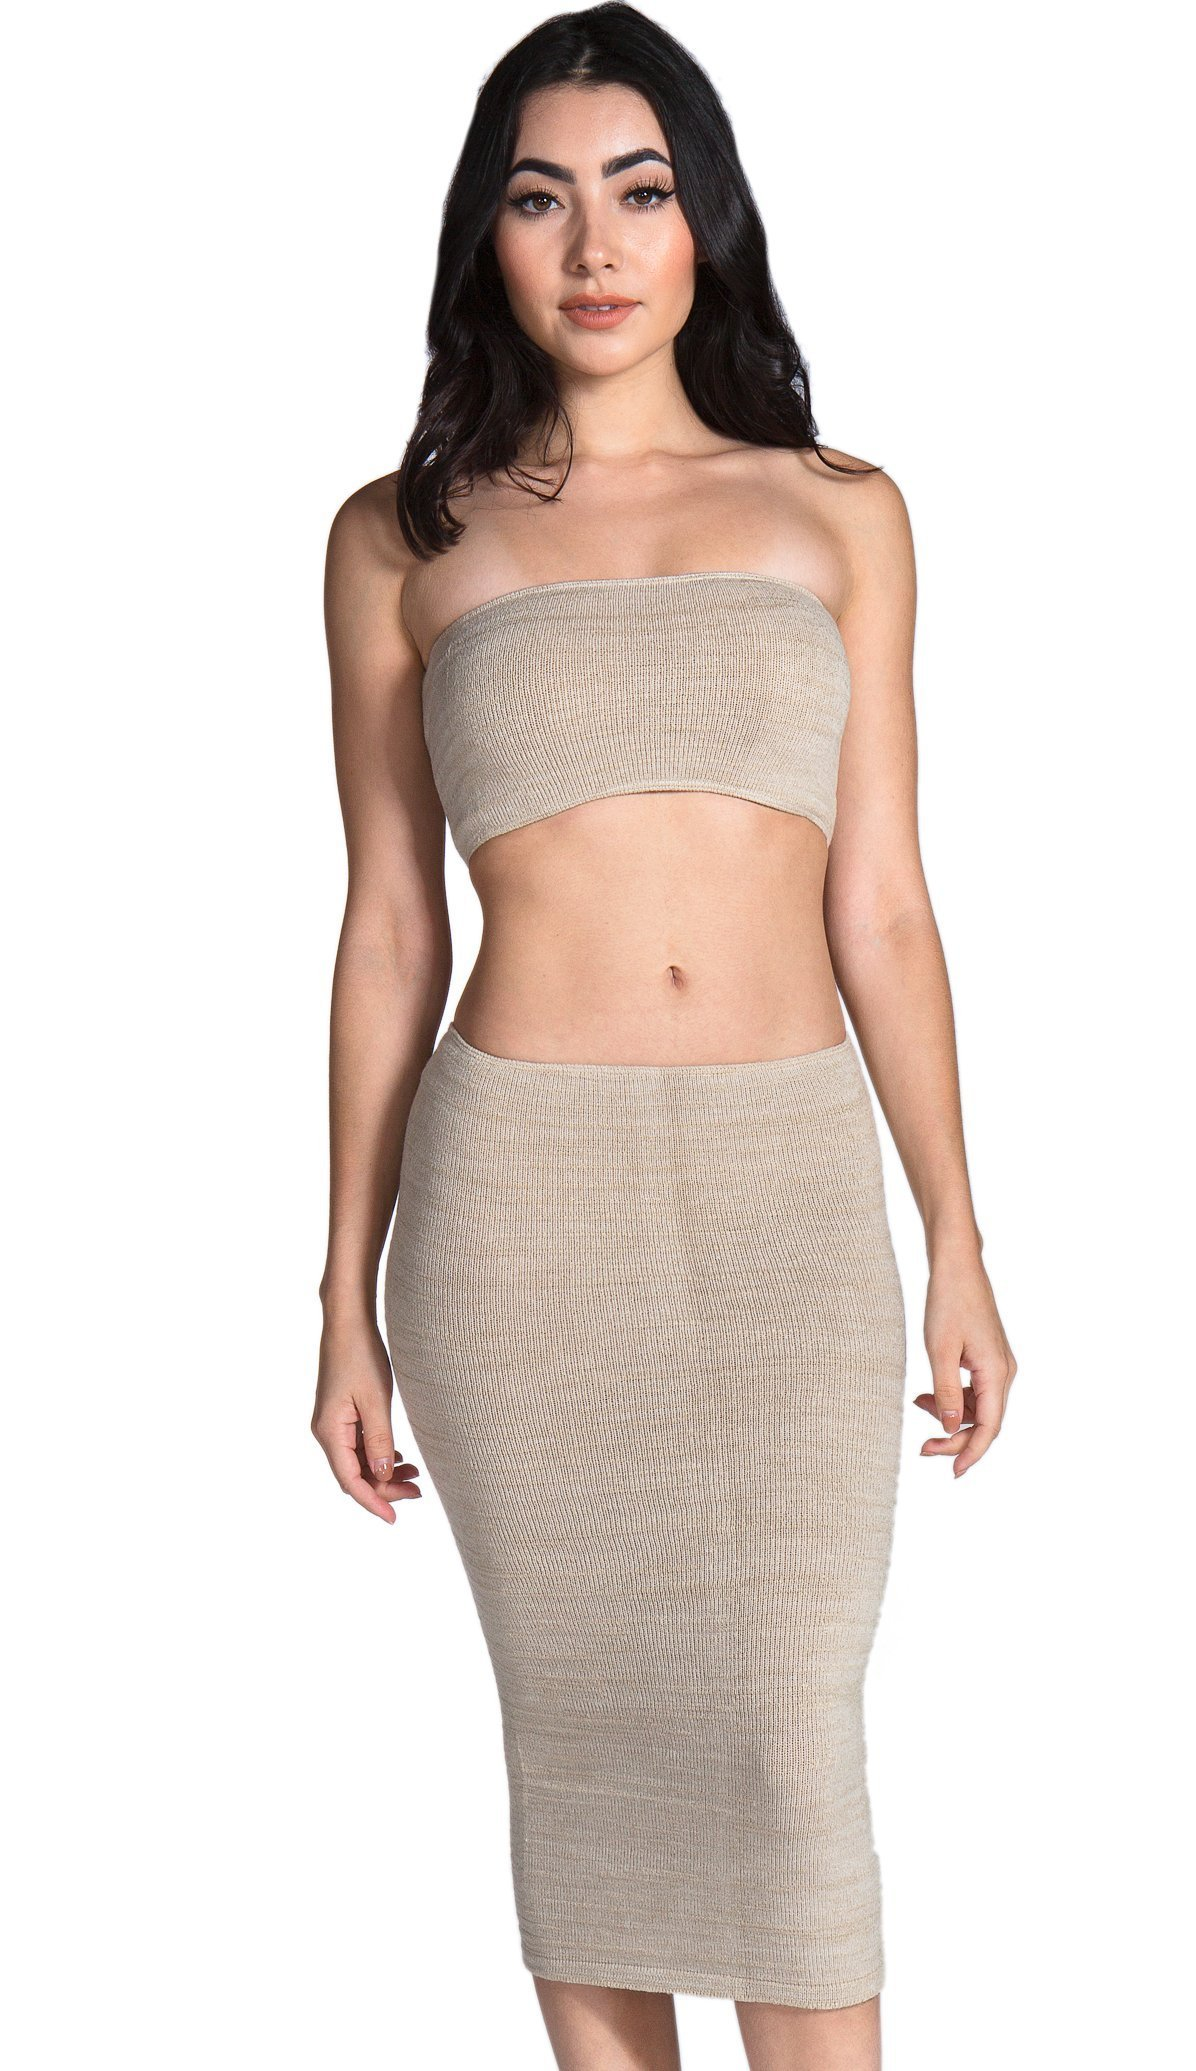 Olive Petite Stretch Knit Sexy Knee High Midi Sweater Dress & Matching Bandeau Tube Top Set by KD dance New York High Quality Made In USA